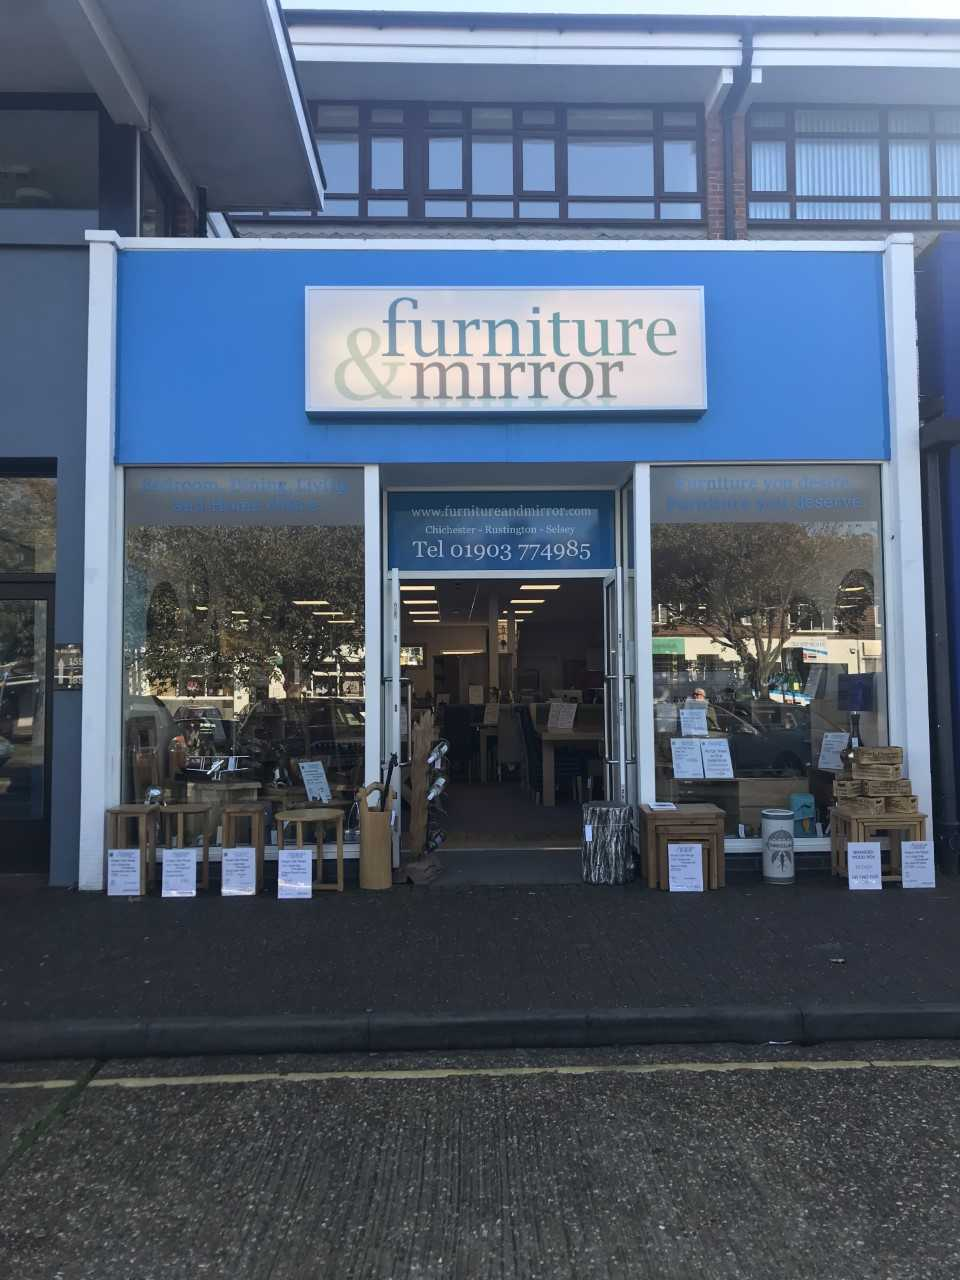 Furniture & Mirror in Rustington (1)